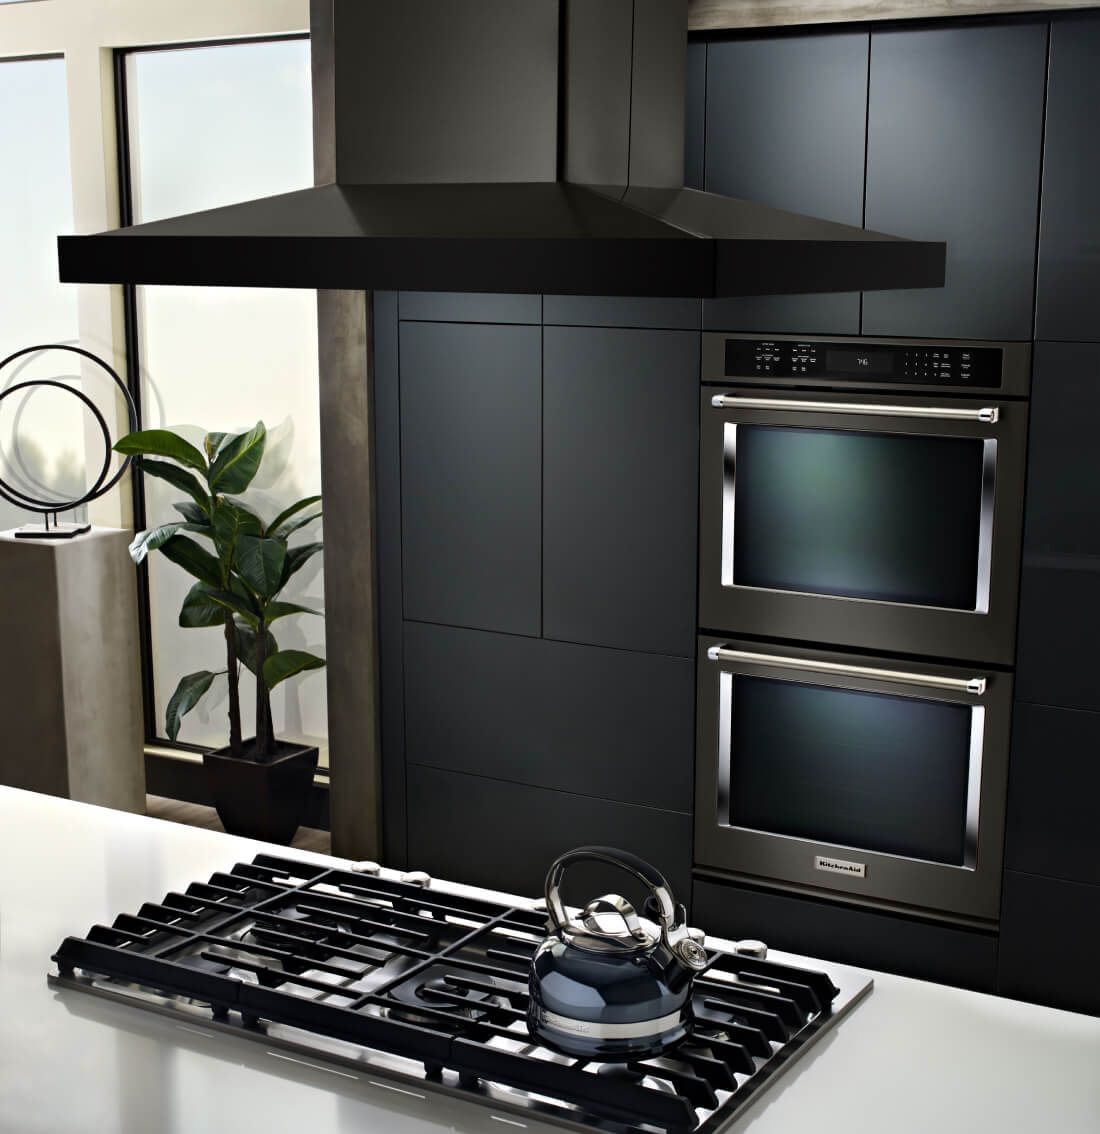 Black island canopy hood over a gas cooktop